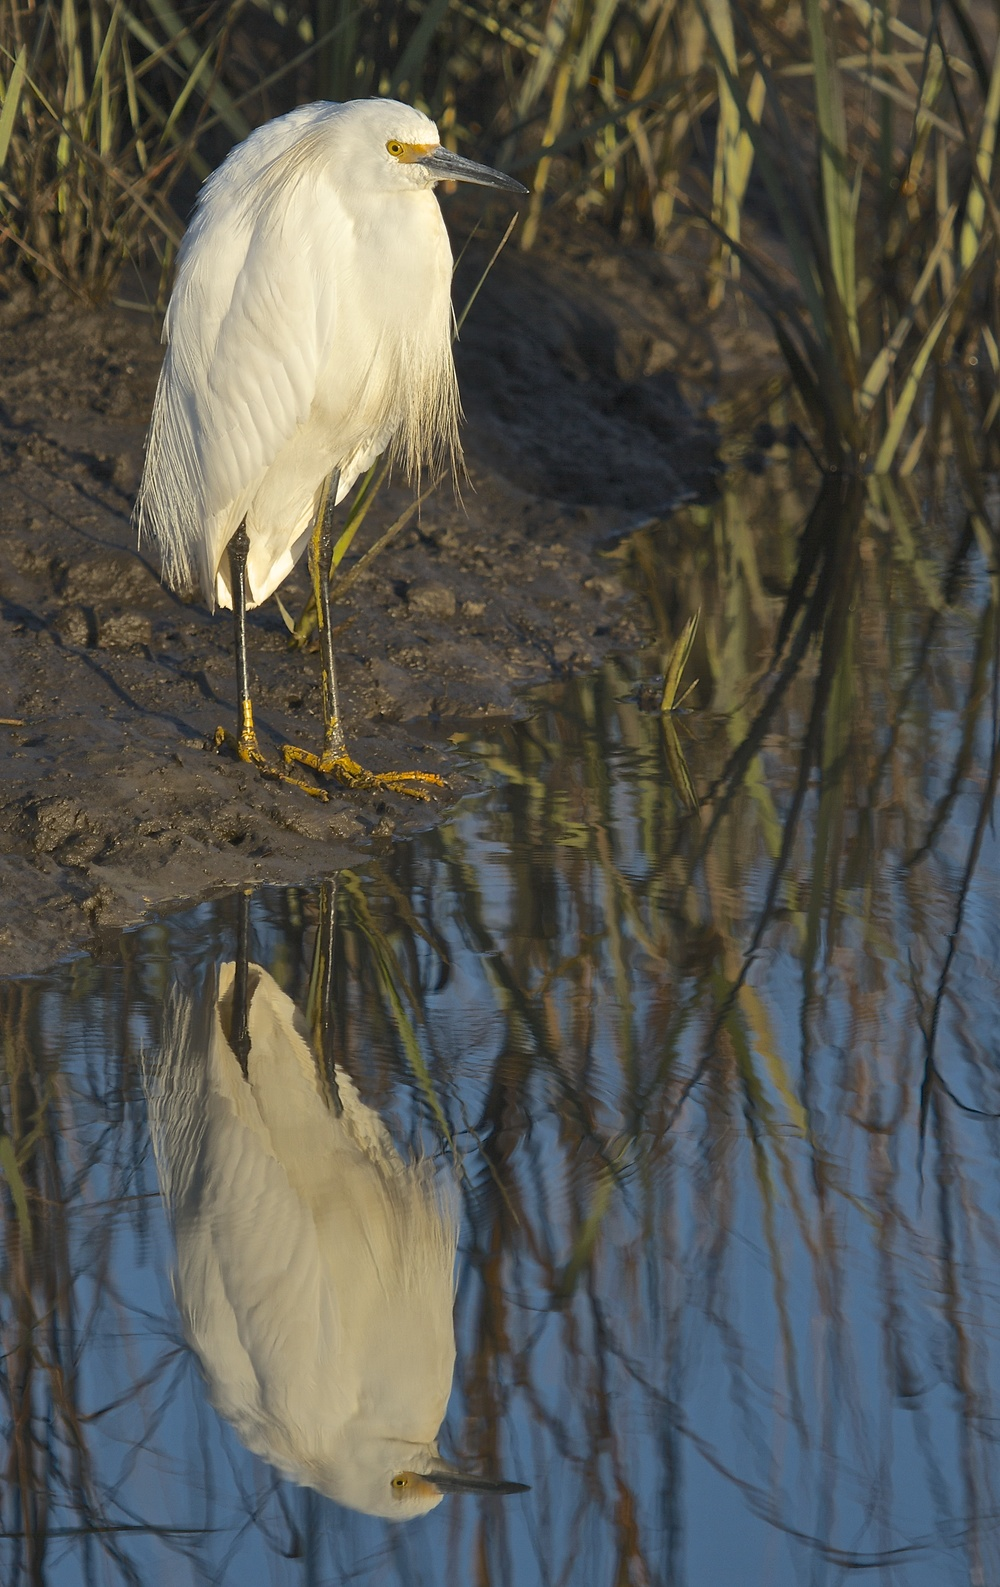 Seemingly like this egret I grumble about life and circumstance as I reflect..then..